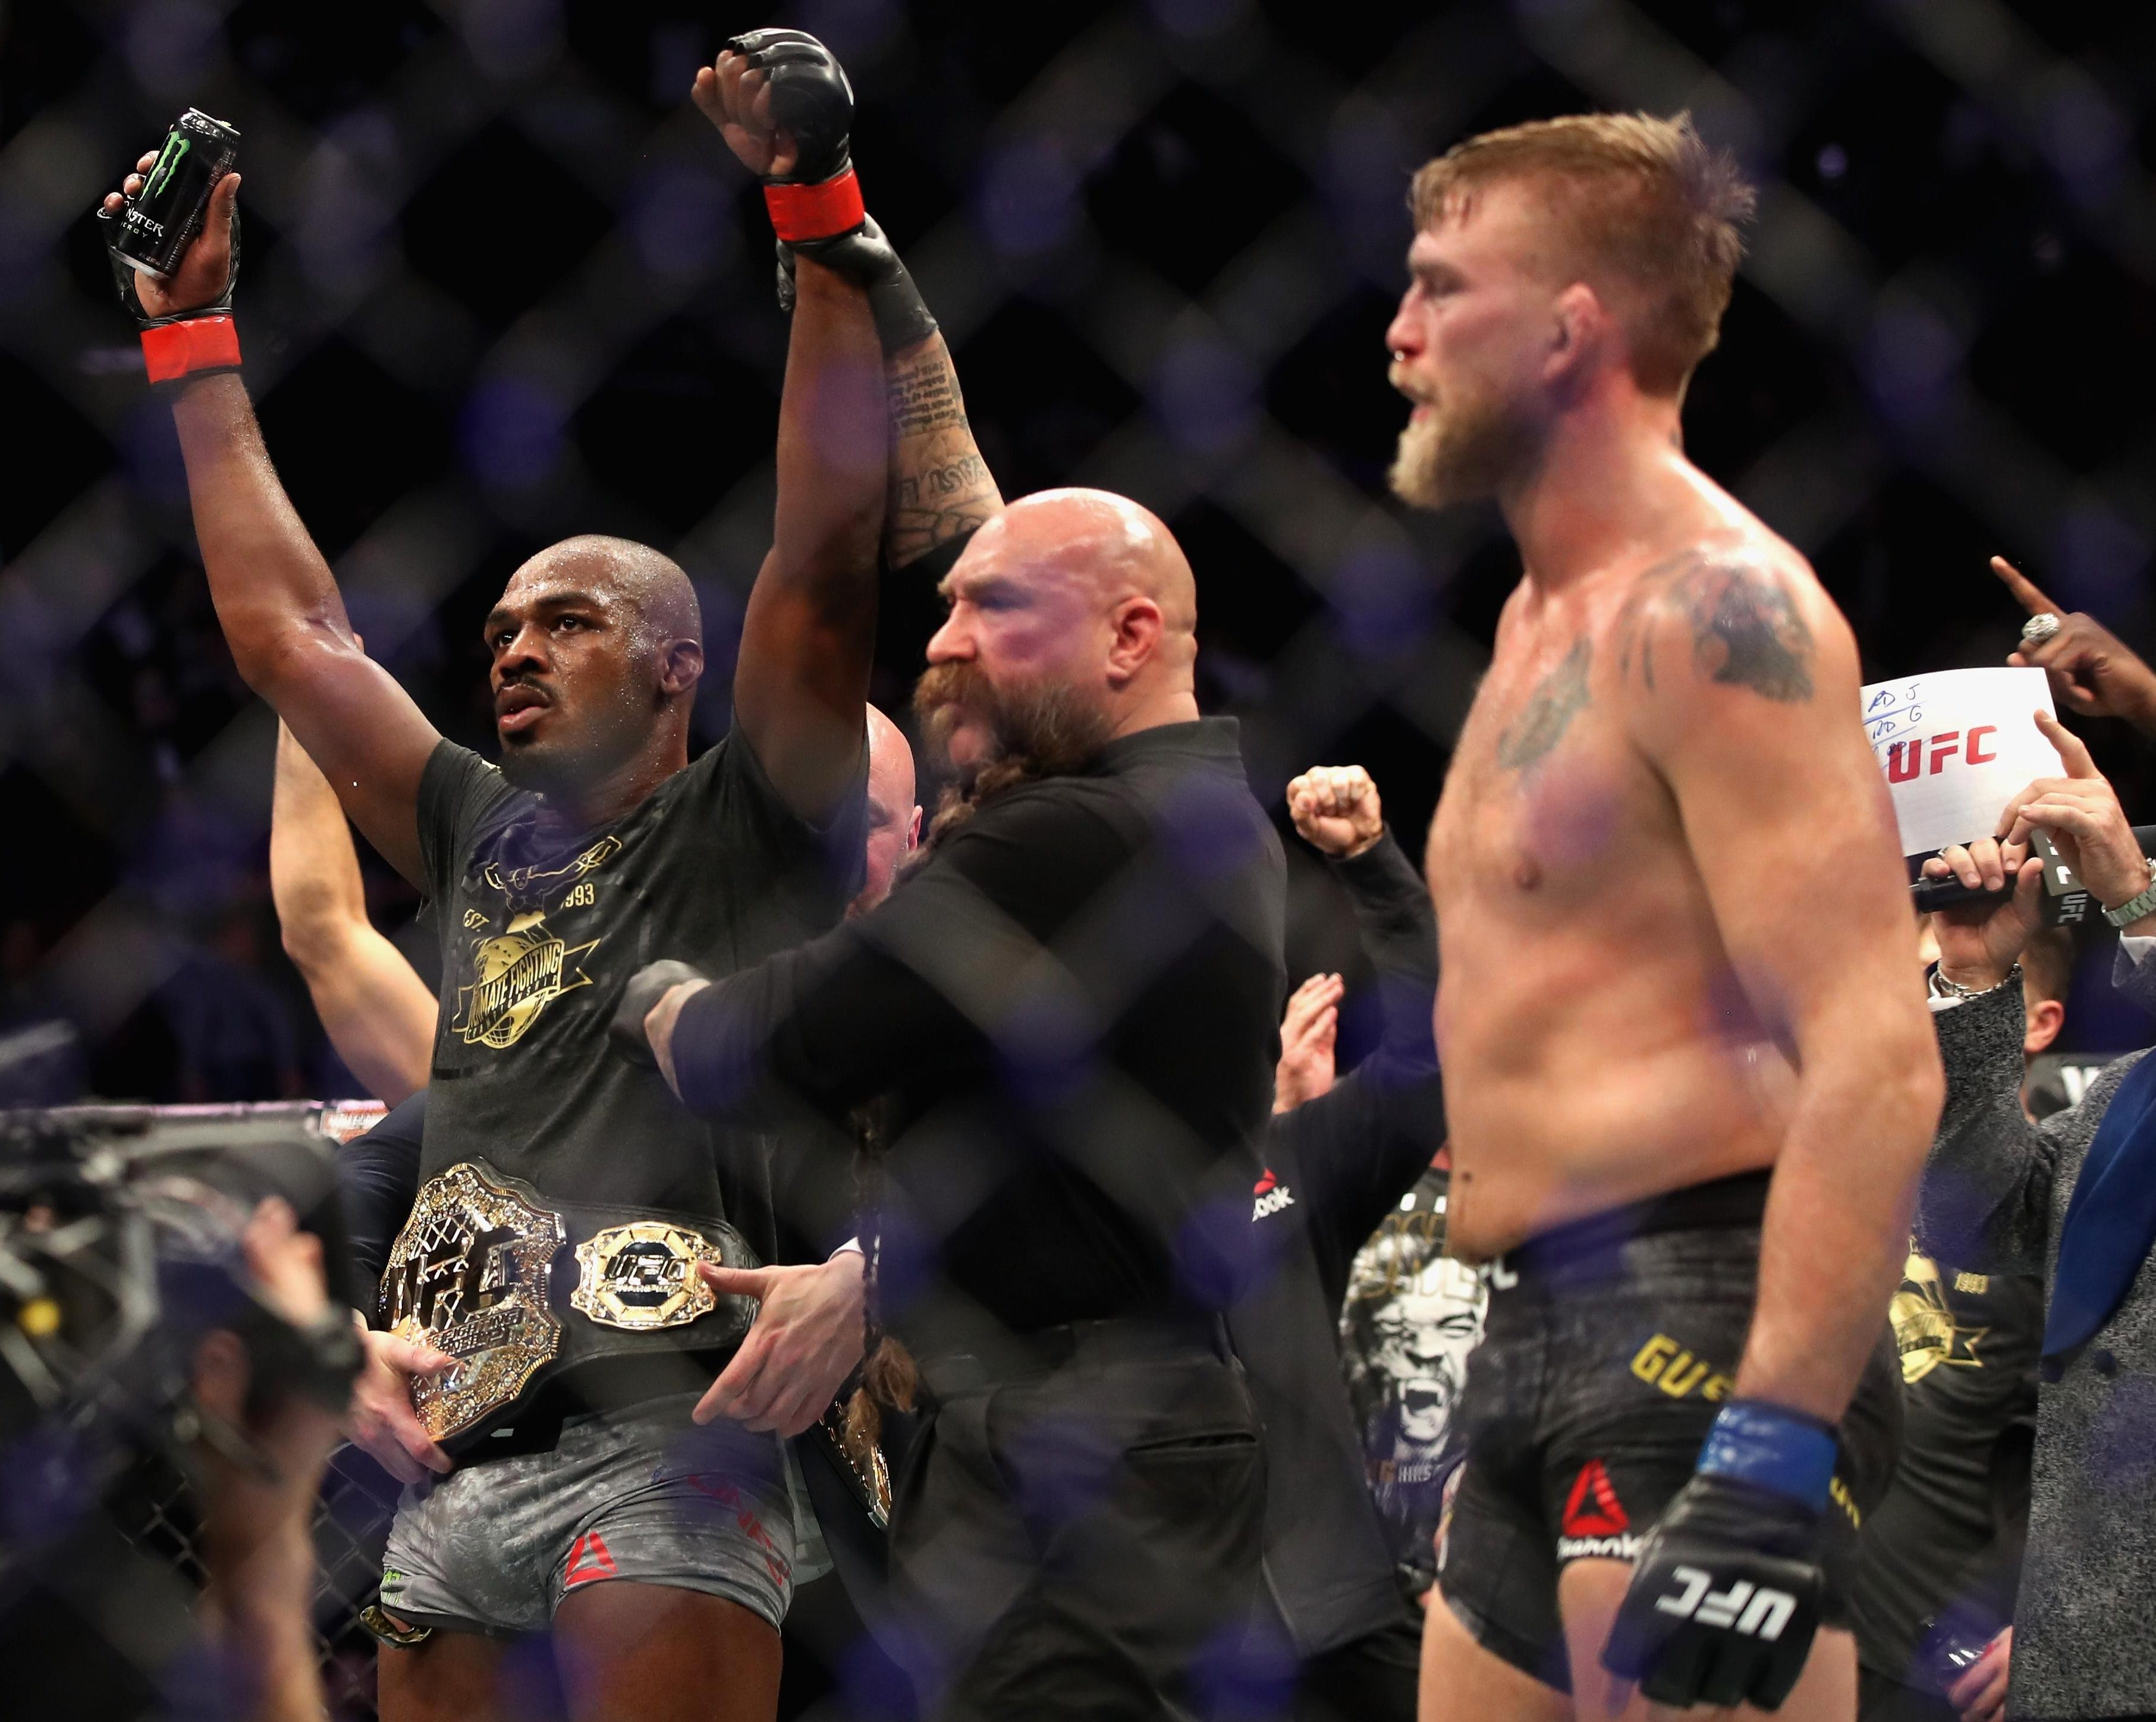 Jones once again claimed the UFC title